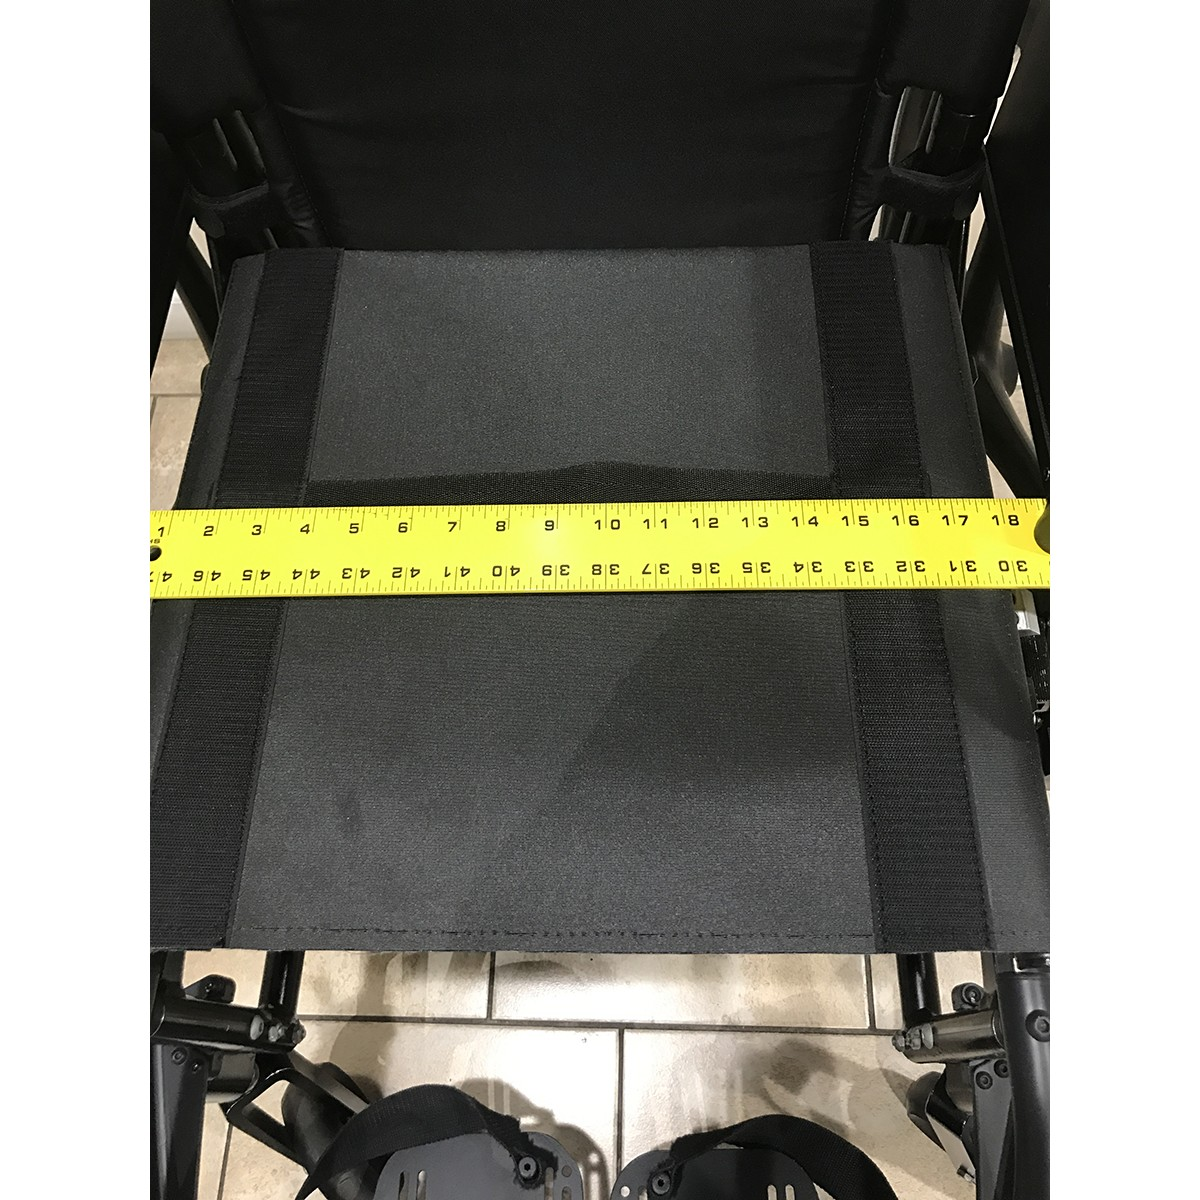 Measurement of Chair on Used Quickie 2 Folding Lightweight Wheelchair